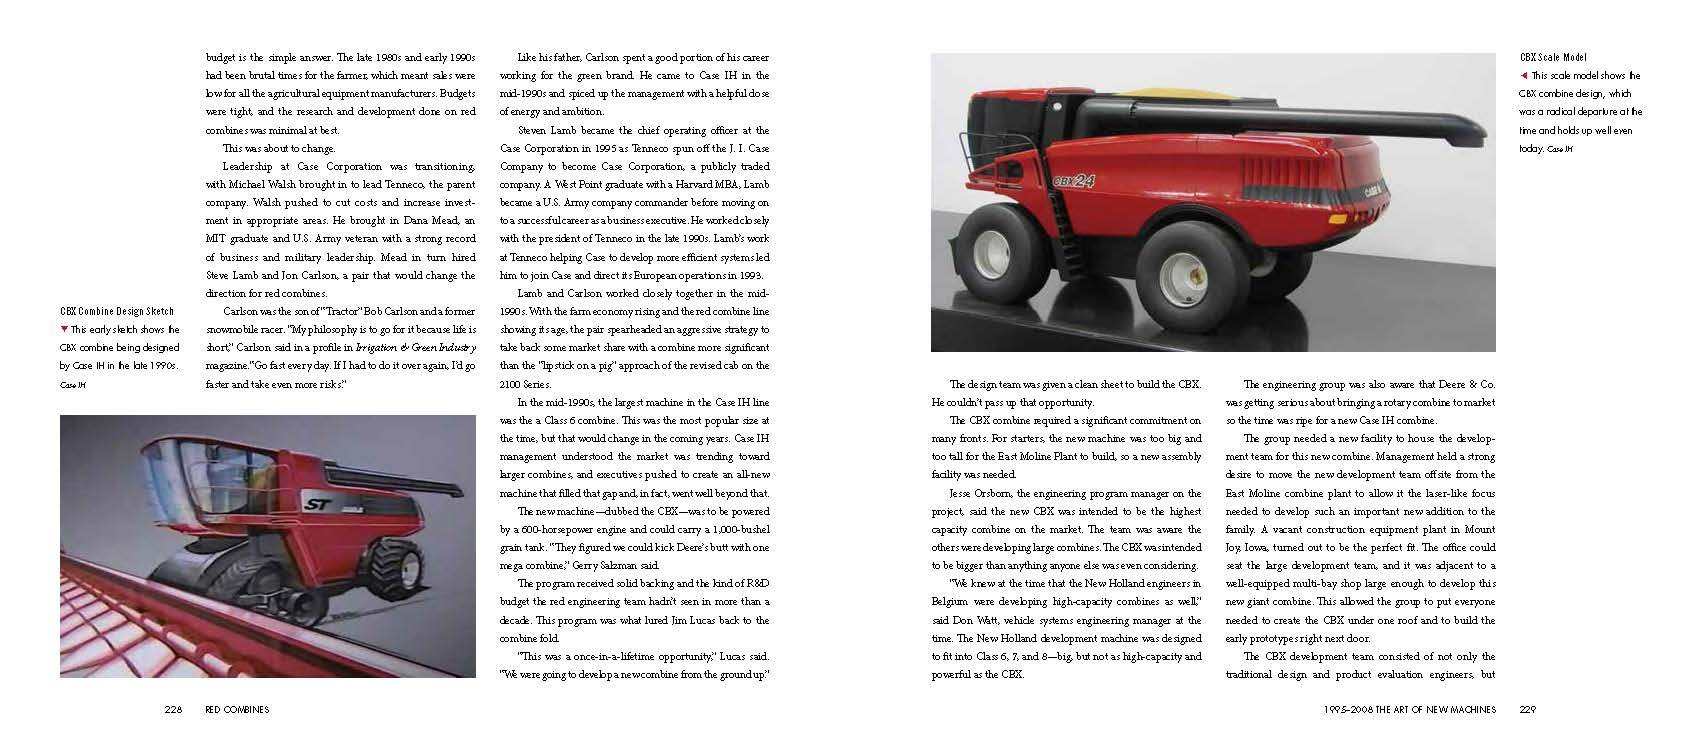 Red Combines 1915-2015: The Authoritative Guide to International Harvester and Case IH Combines and Harvesting Equipment by Octane Press LLC (Image #9)